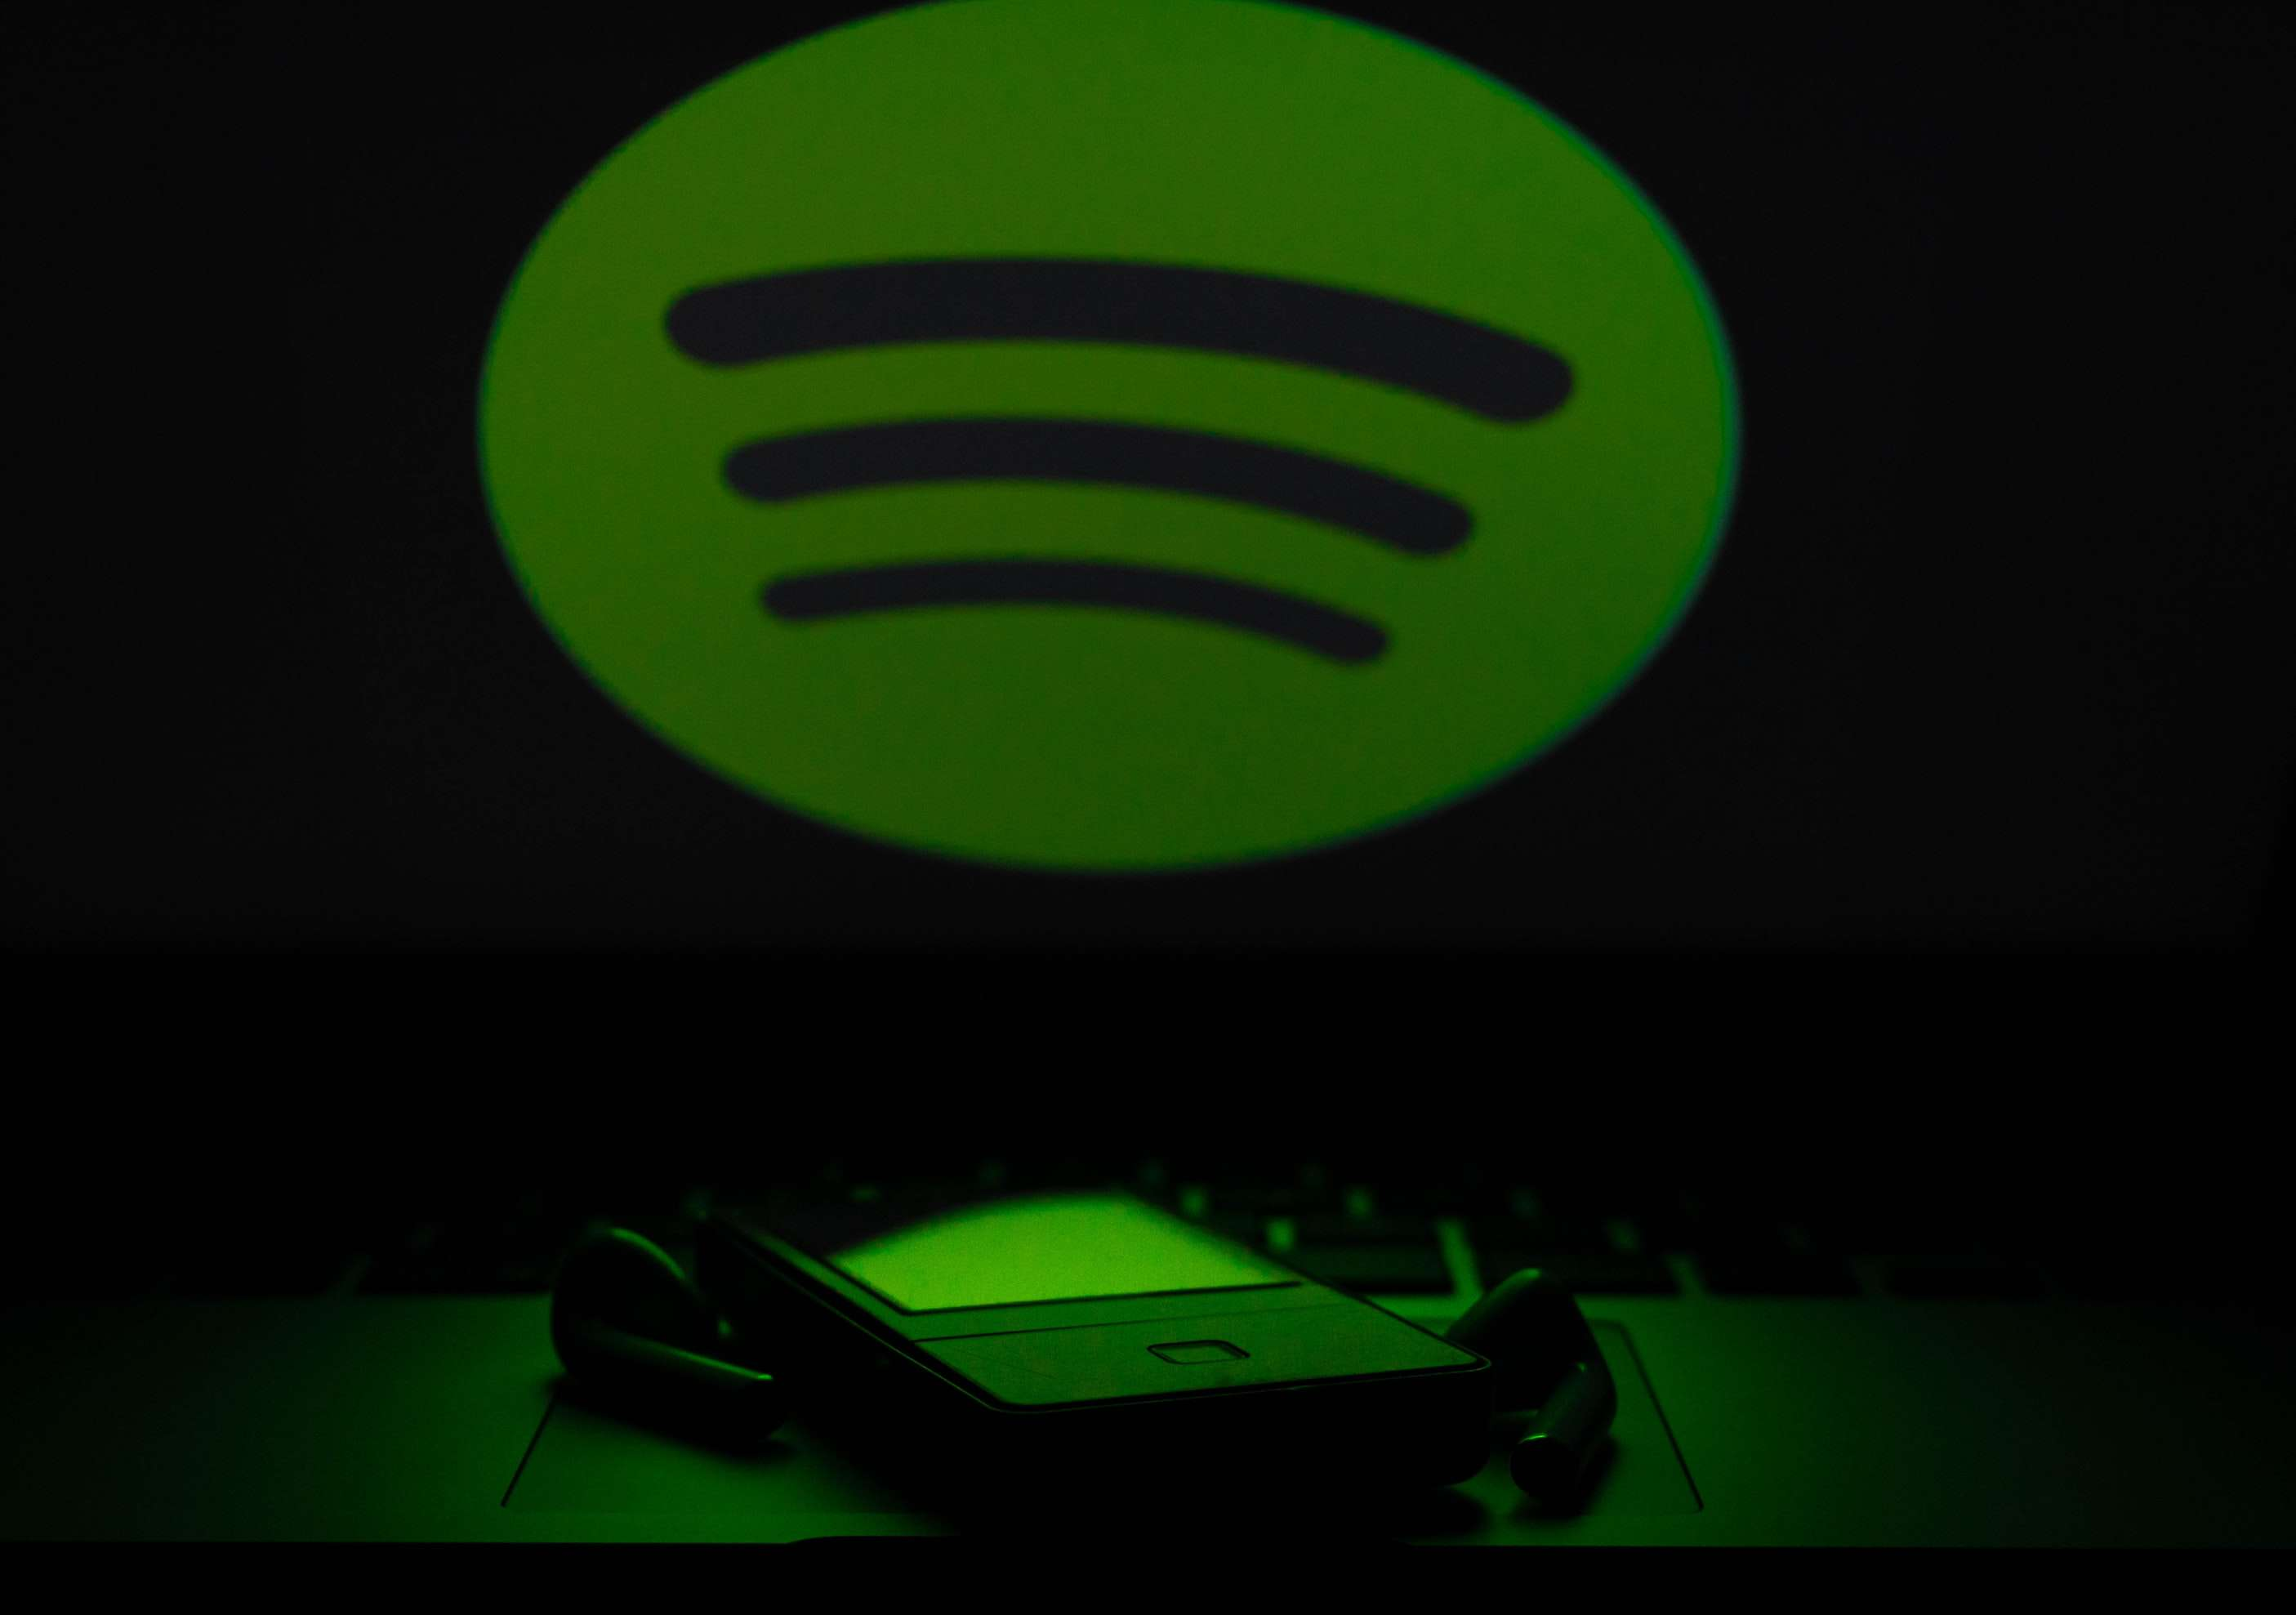 The Spotify logo looming over an mp3 player and headphones